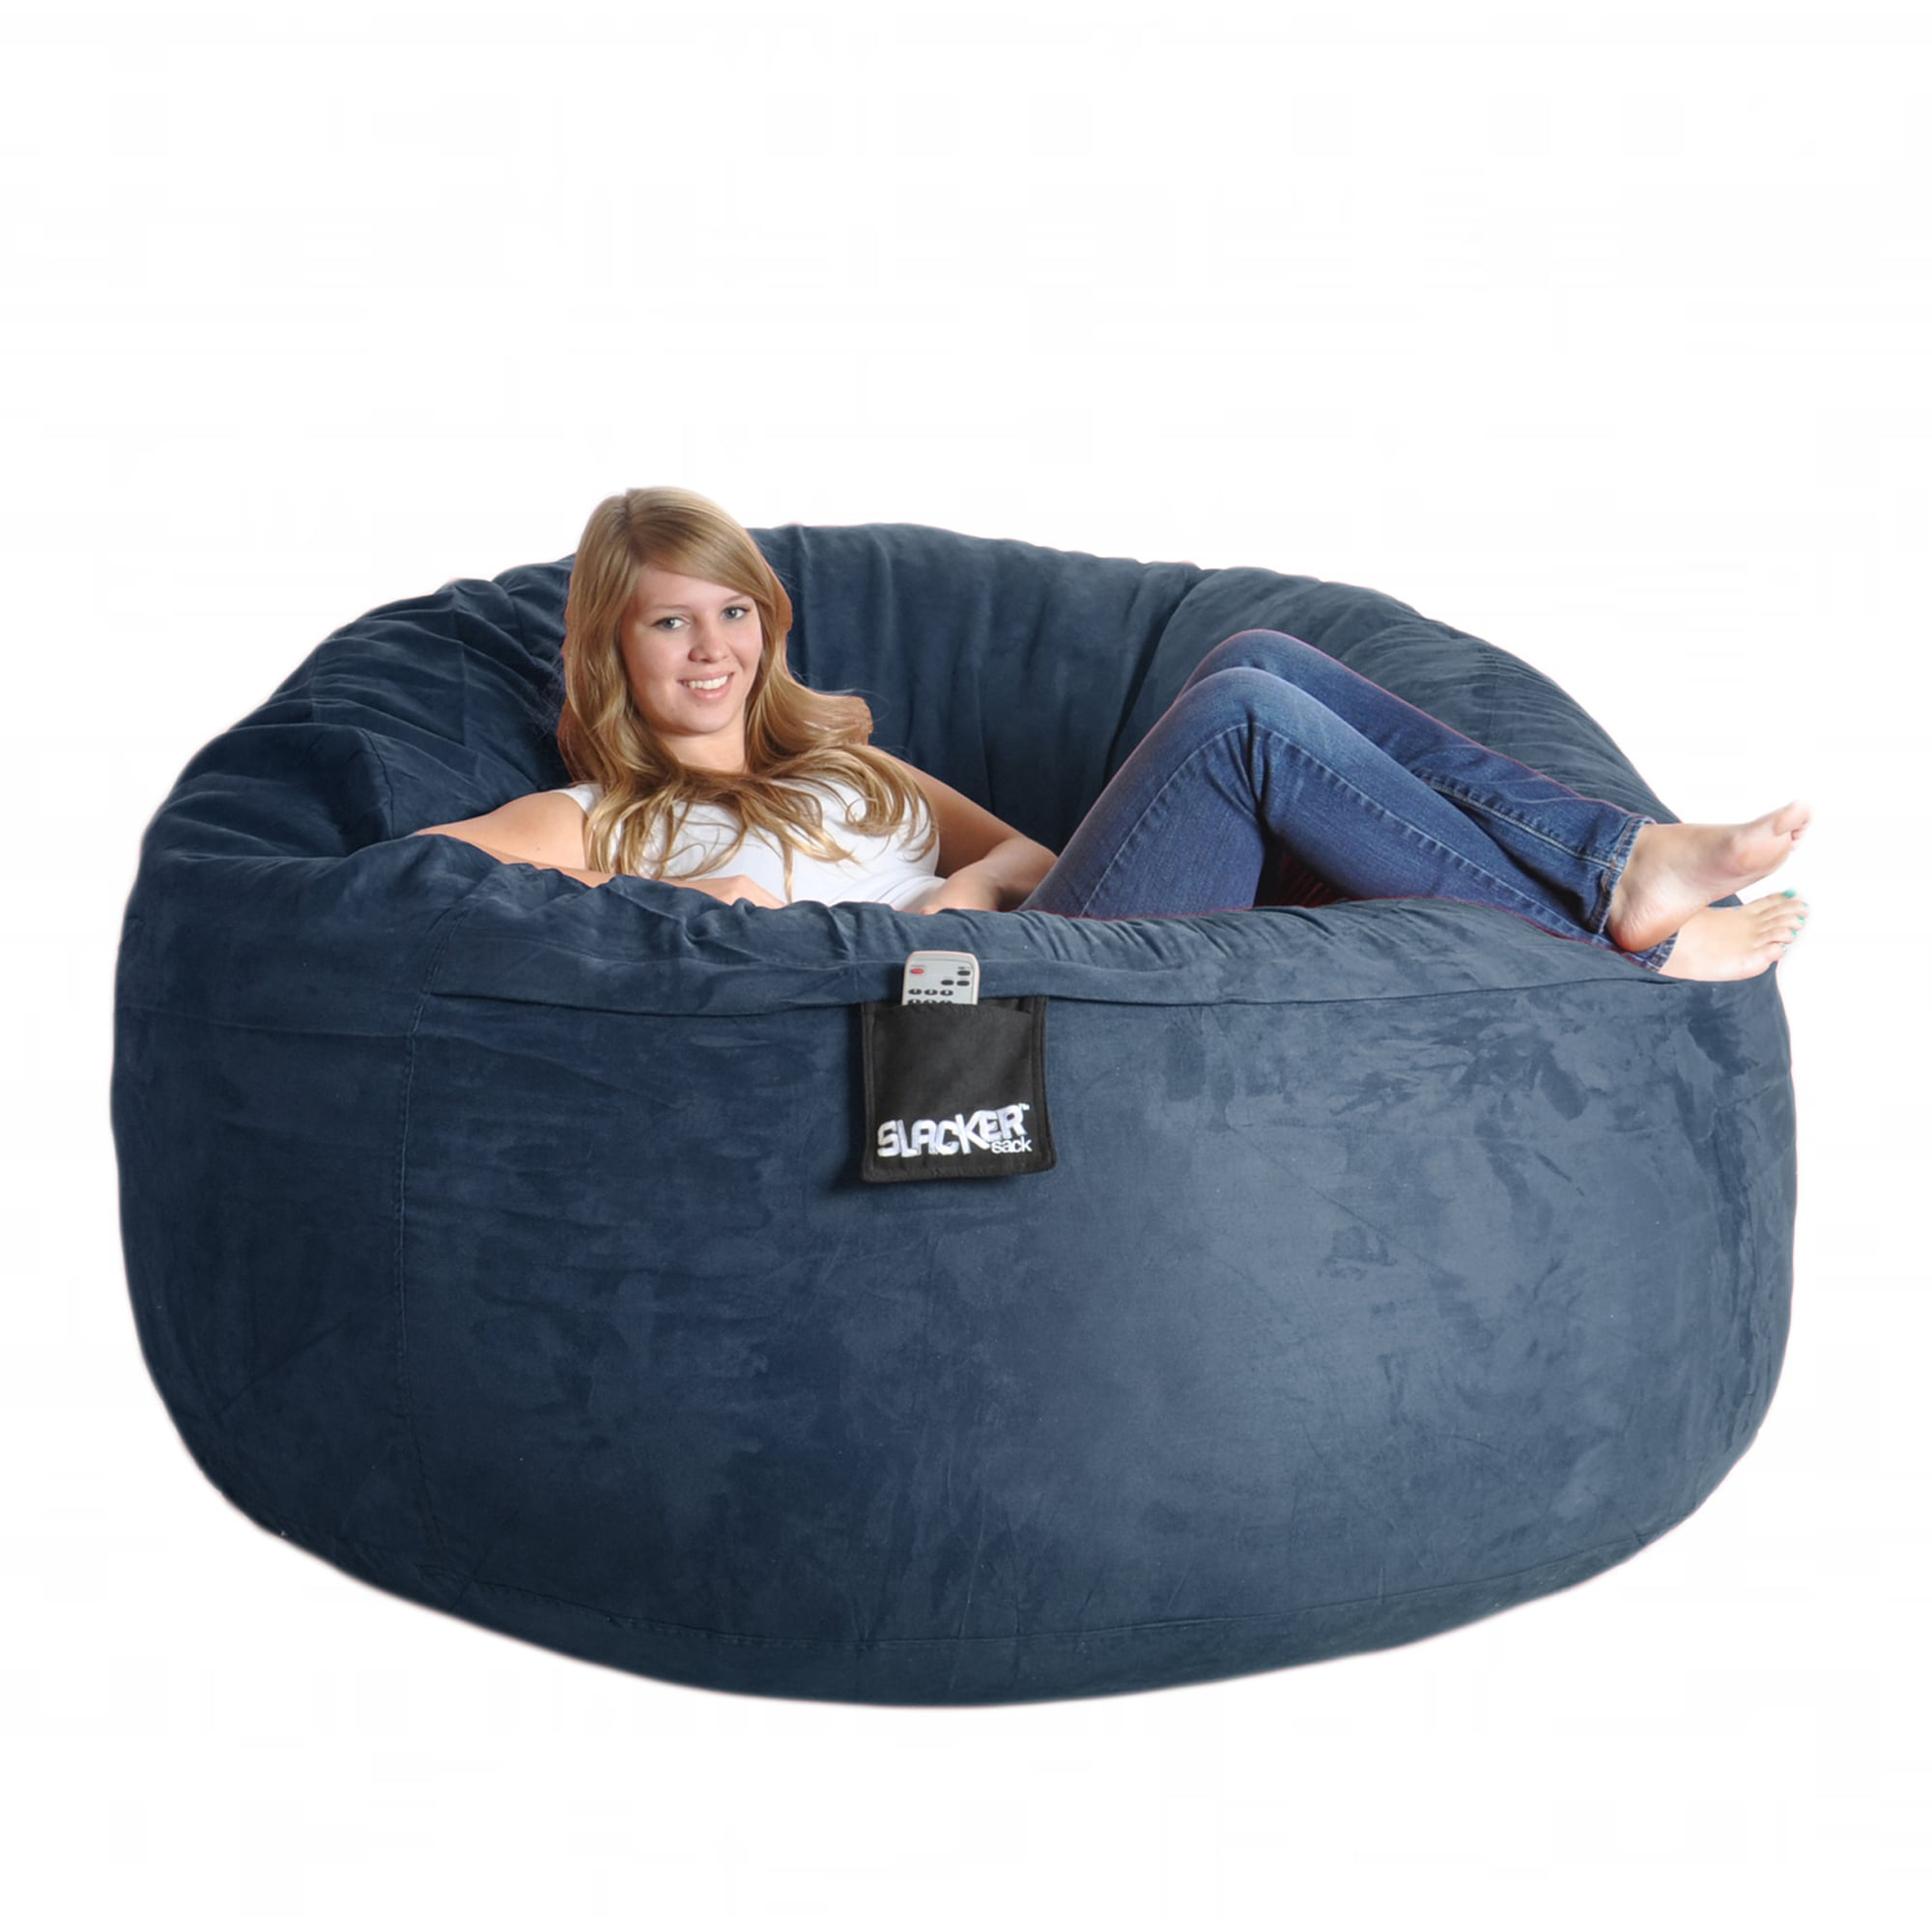 Shop Navy Blue 6-foot Microfiber and Memory Foam Bean Bag - Free Shipping  Today - Overstock - 6735475 d87676118ecf2